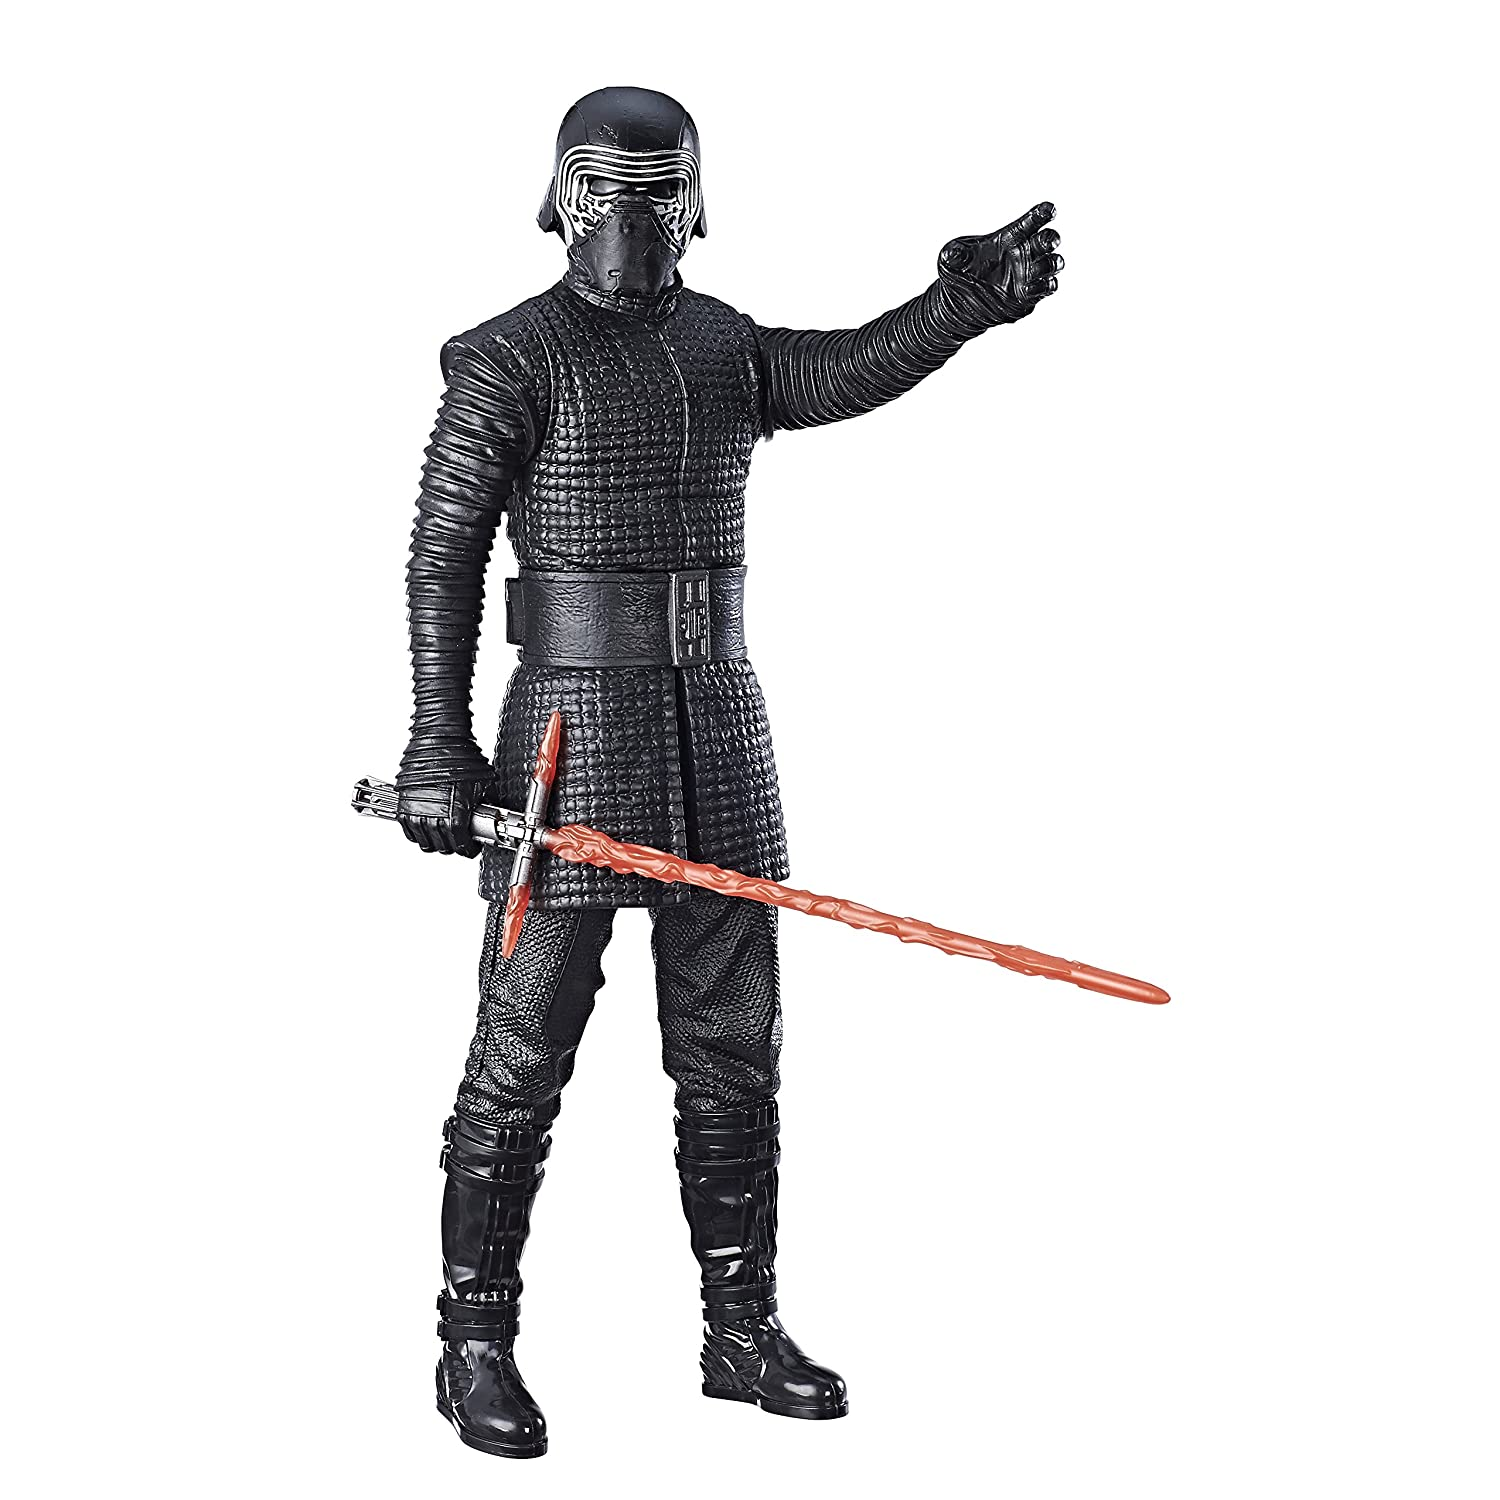 Star Wars The Last Jedi Kylo Ren Figure, 12-Inch Hasbro C3424ES0